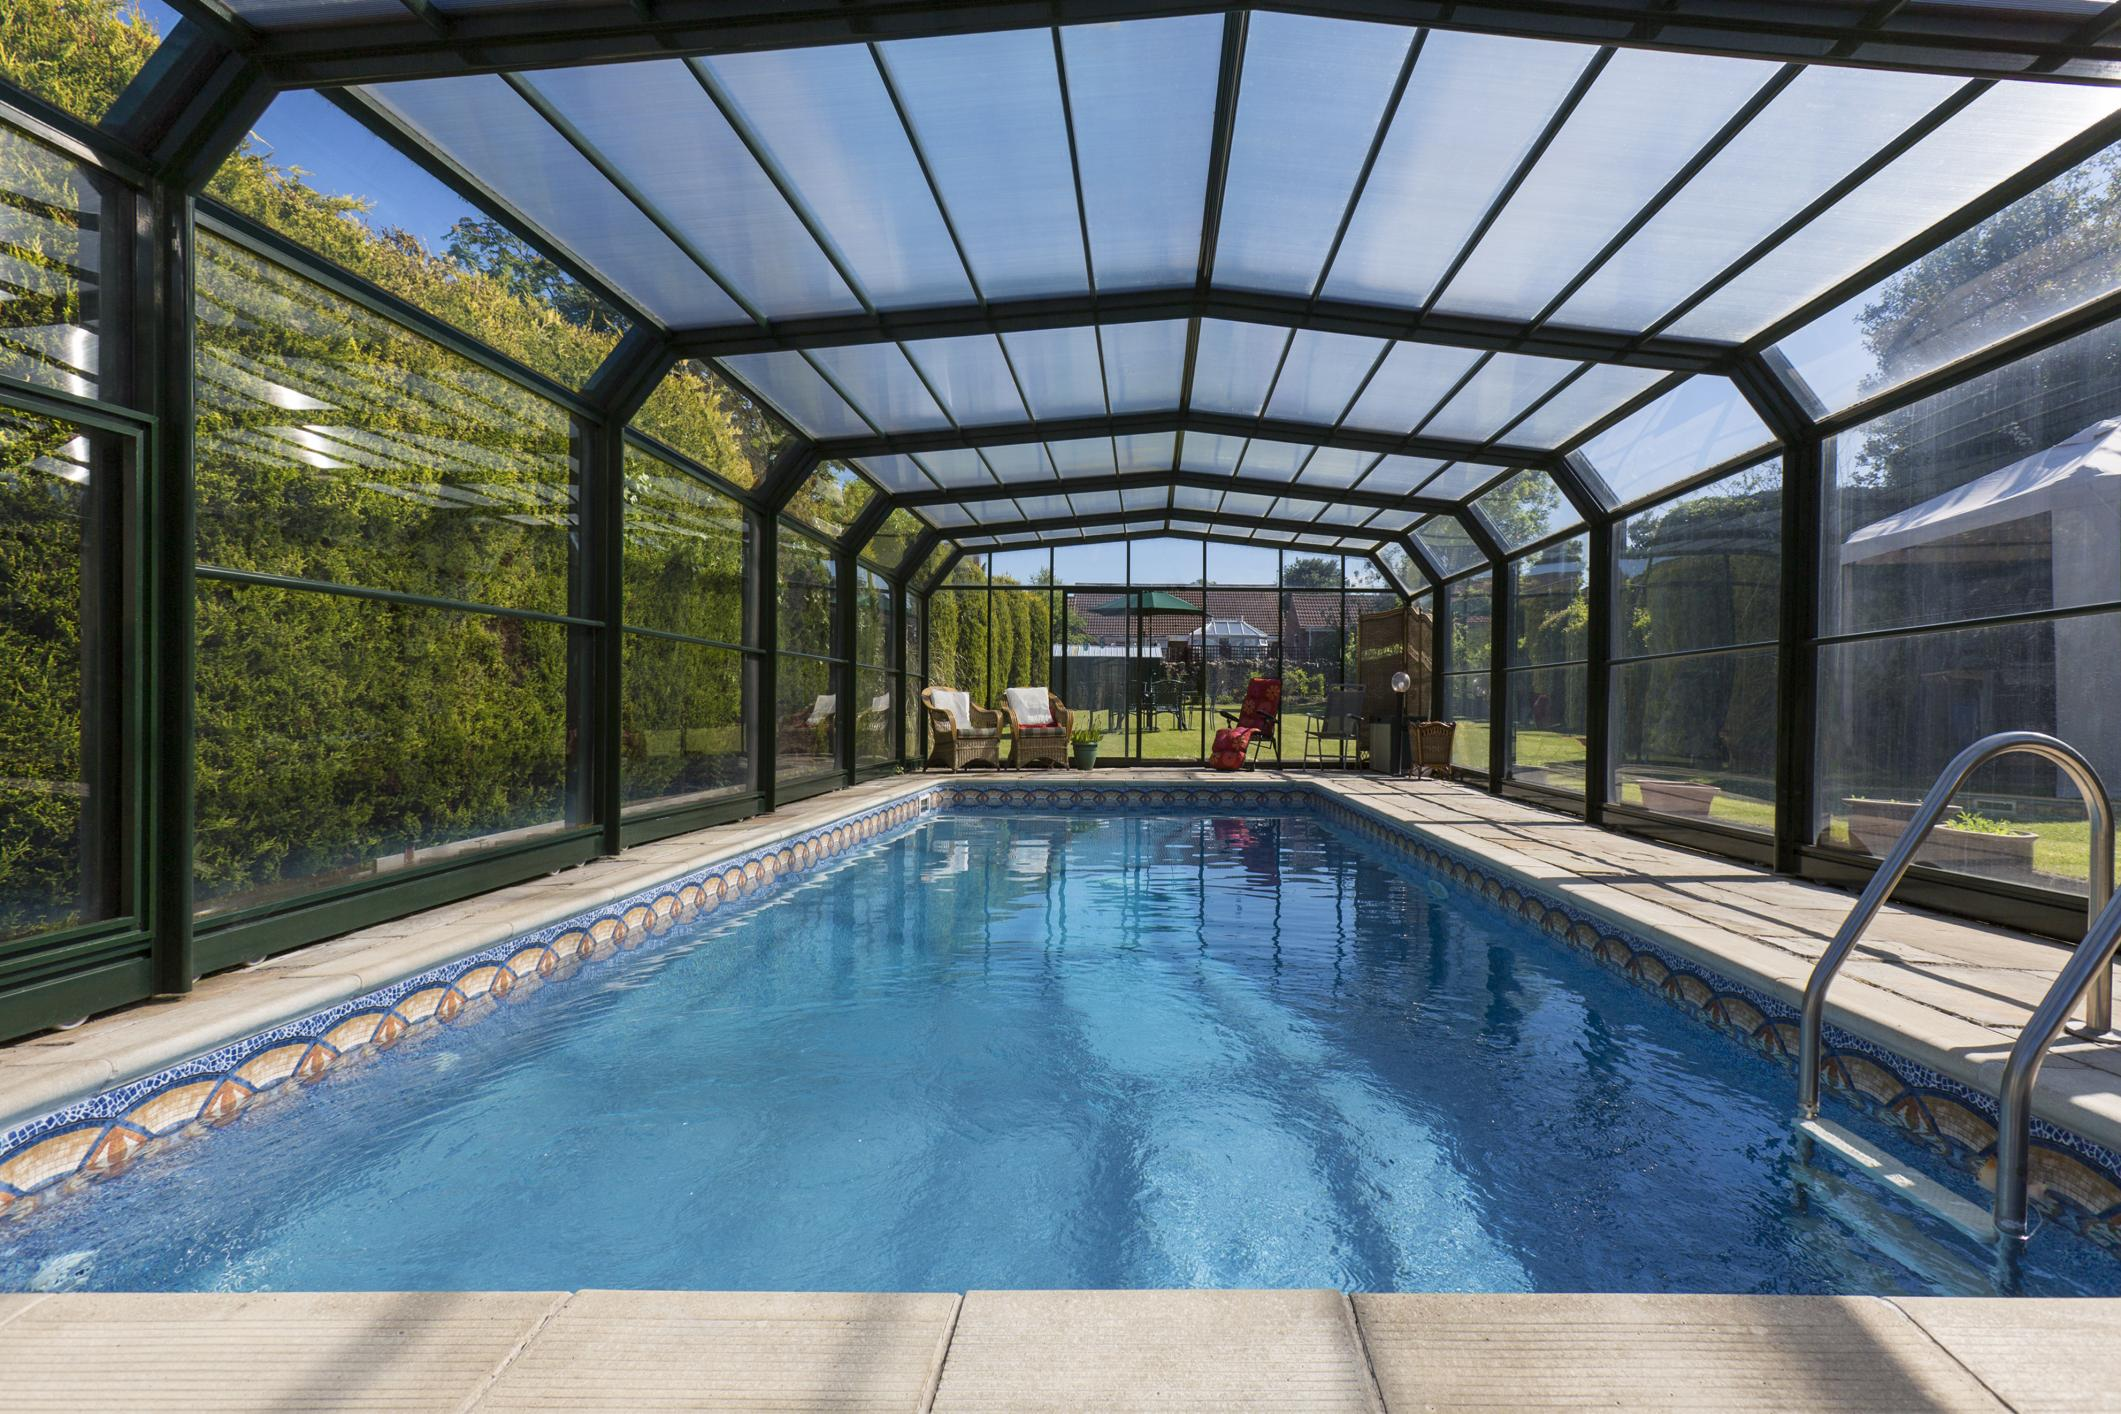 pool inside the pool cage